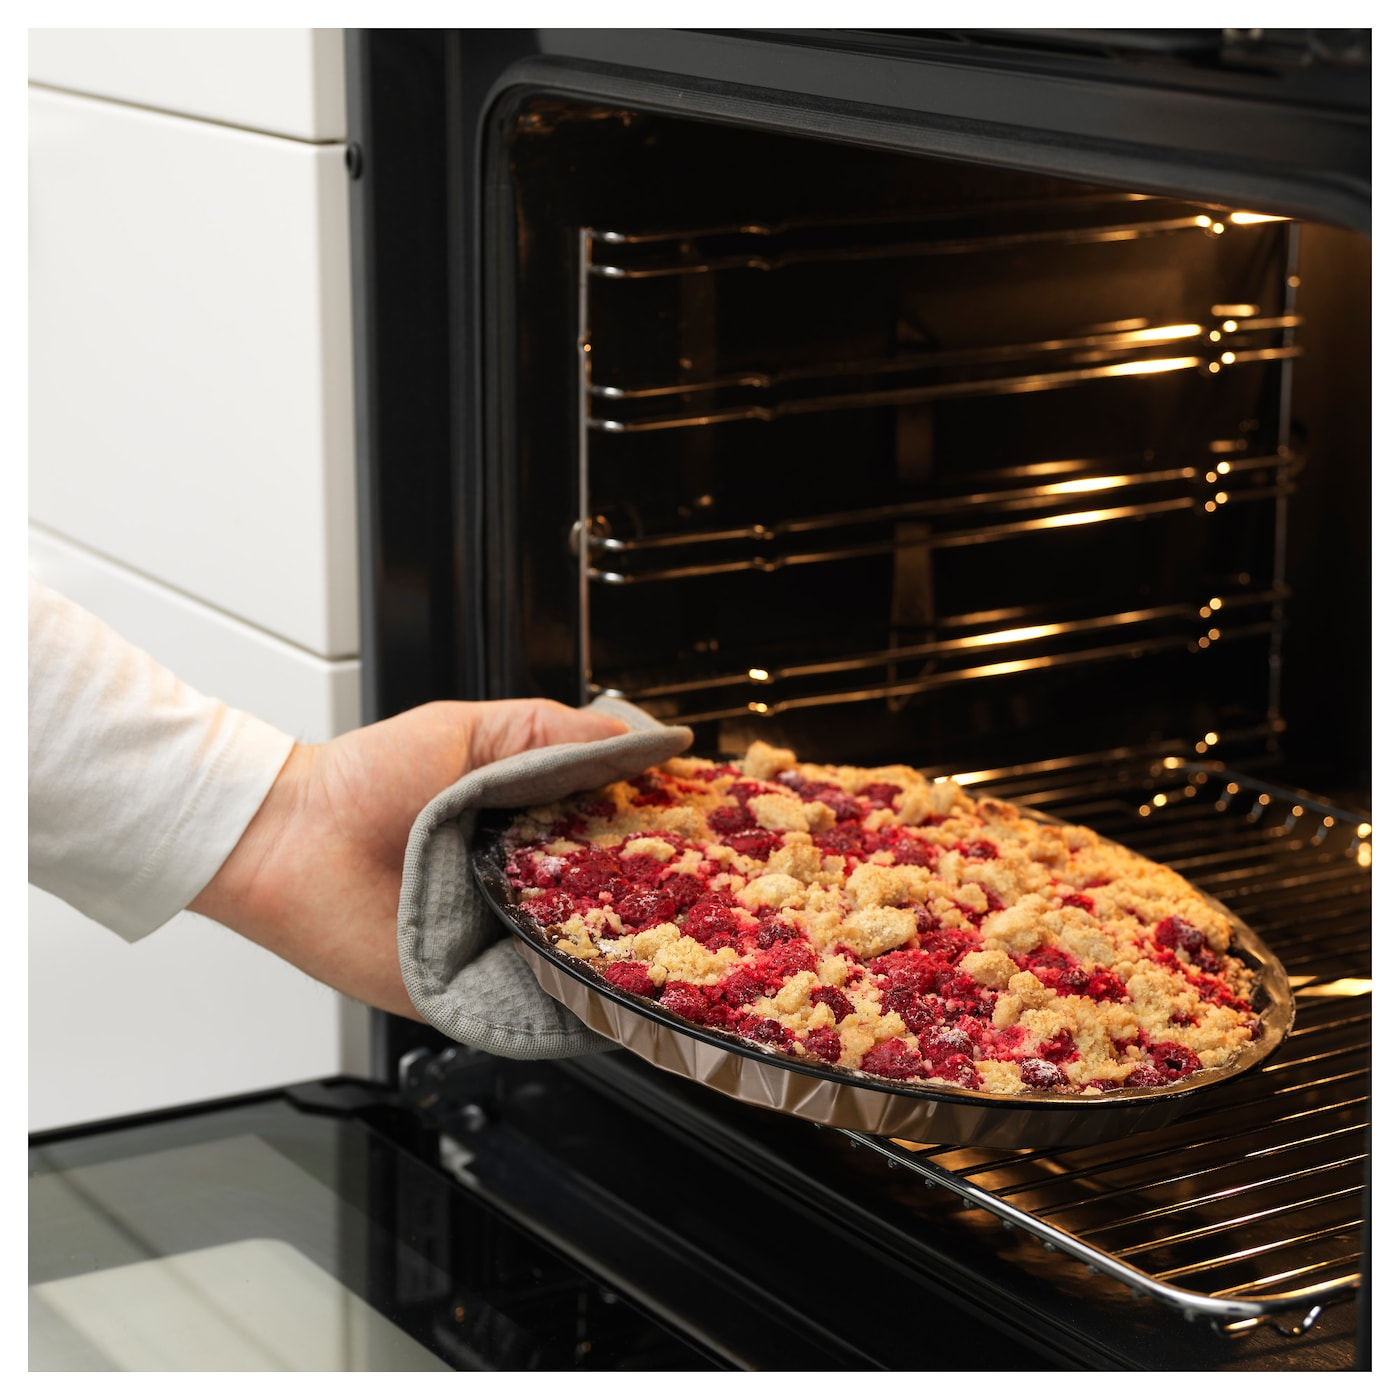 IKEA BULLAR baking tin, set of 2 Pastry releases easily thanks to the non-stick coating.